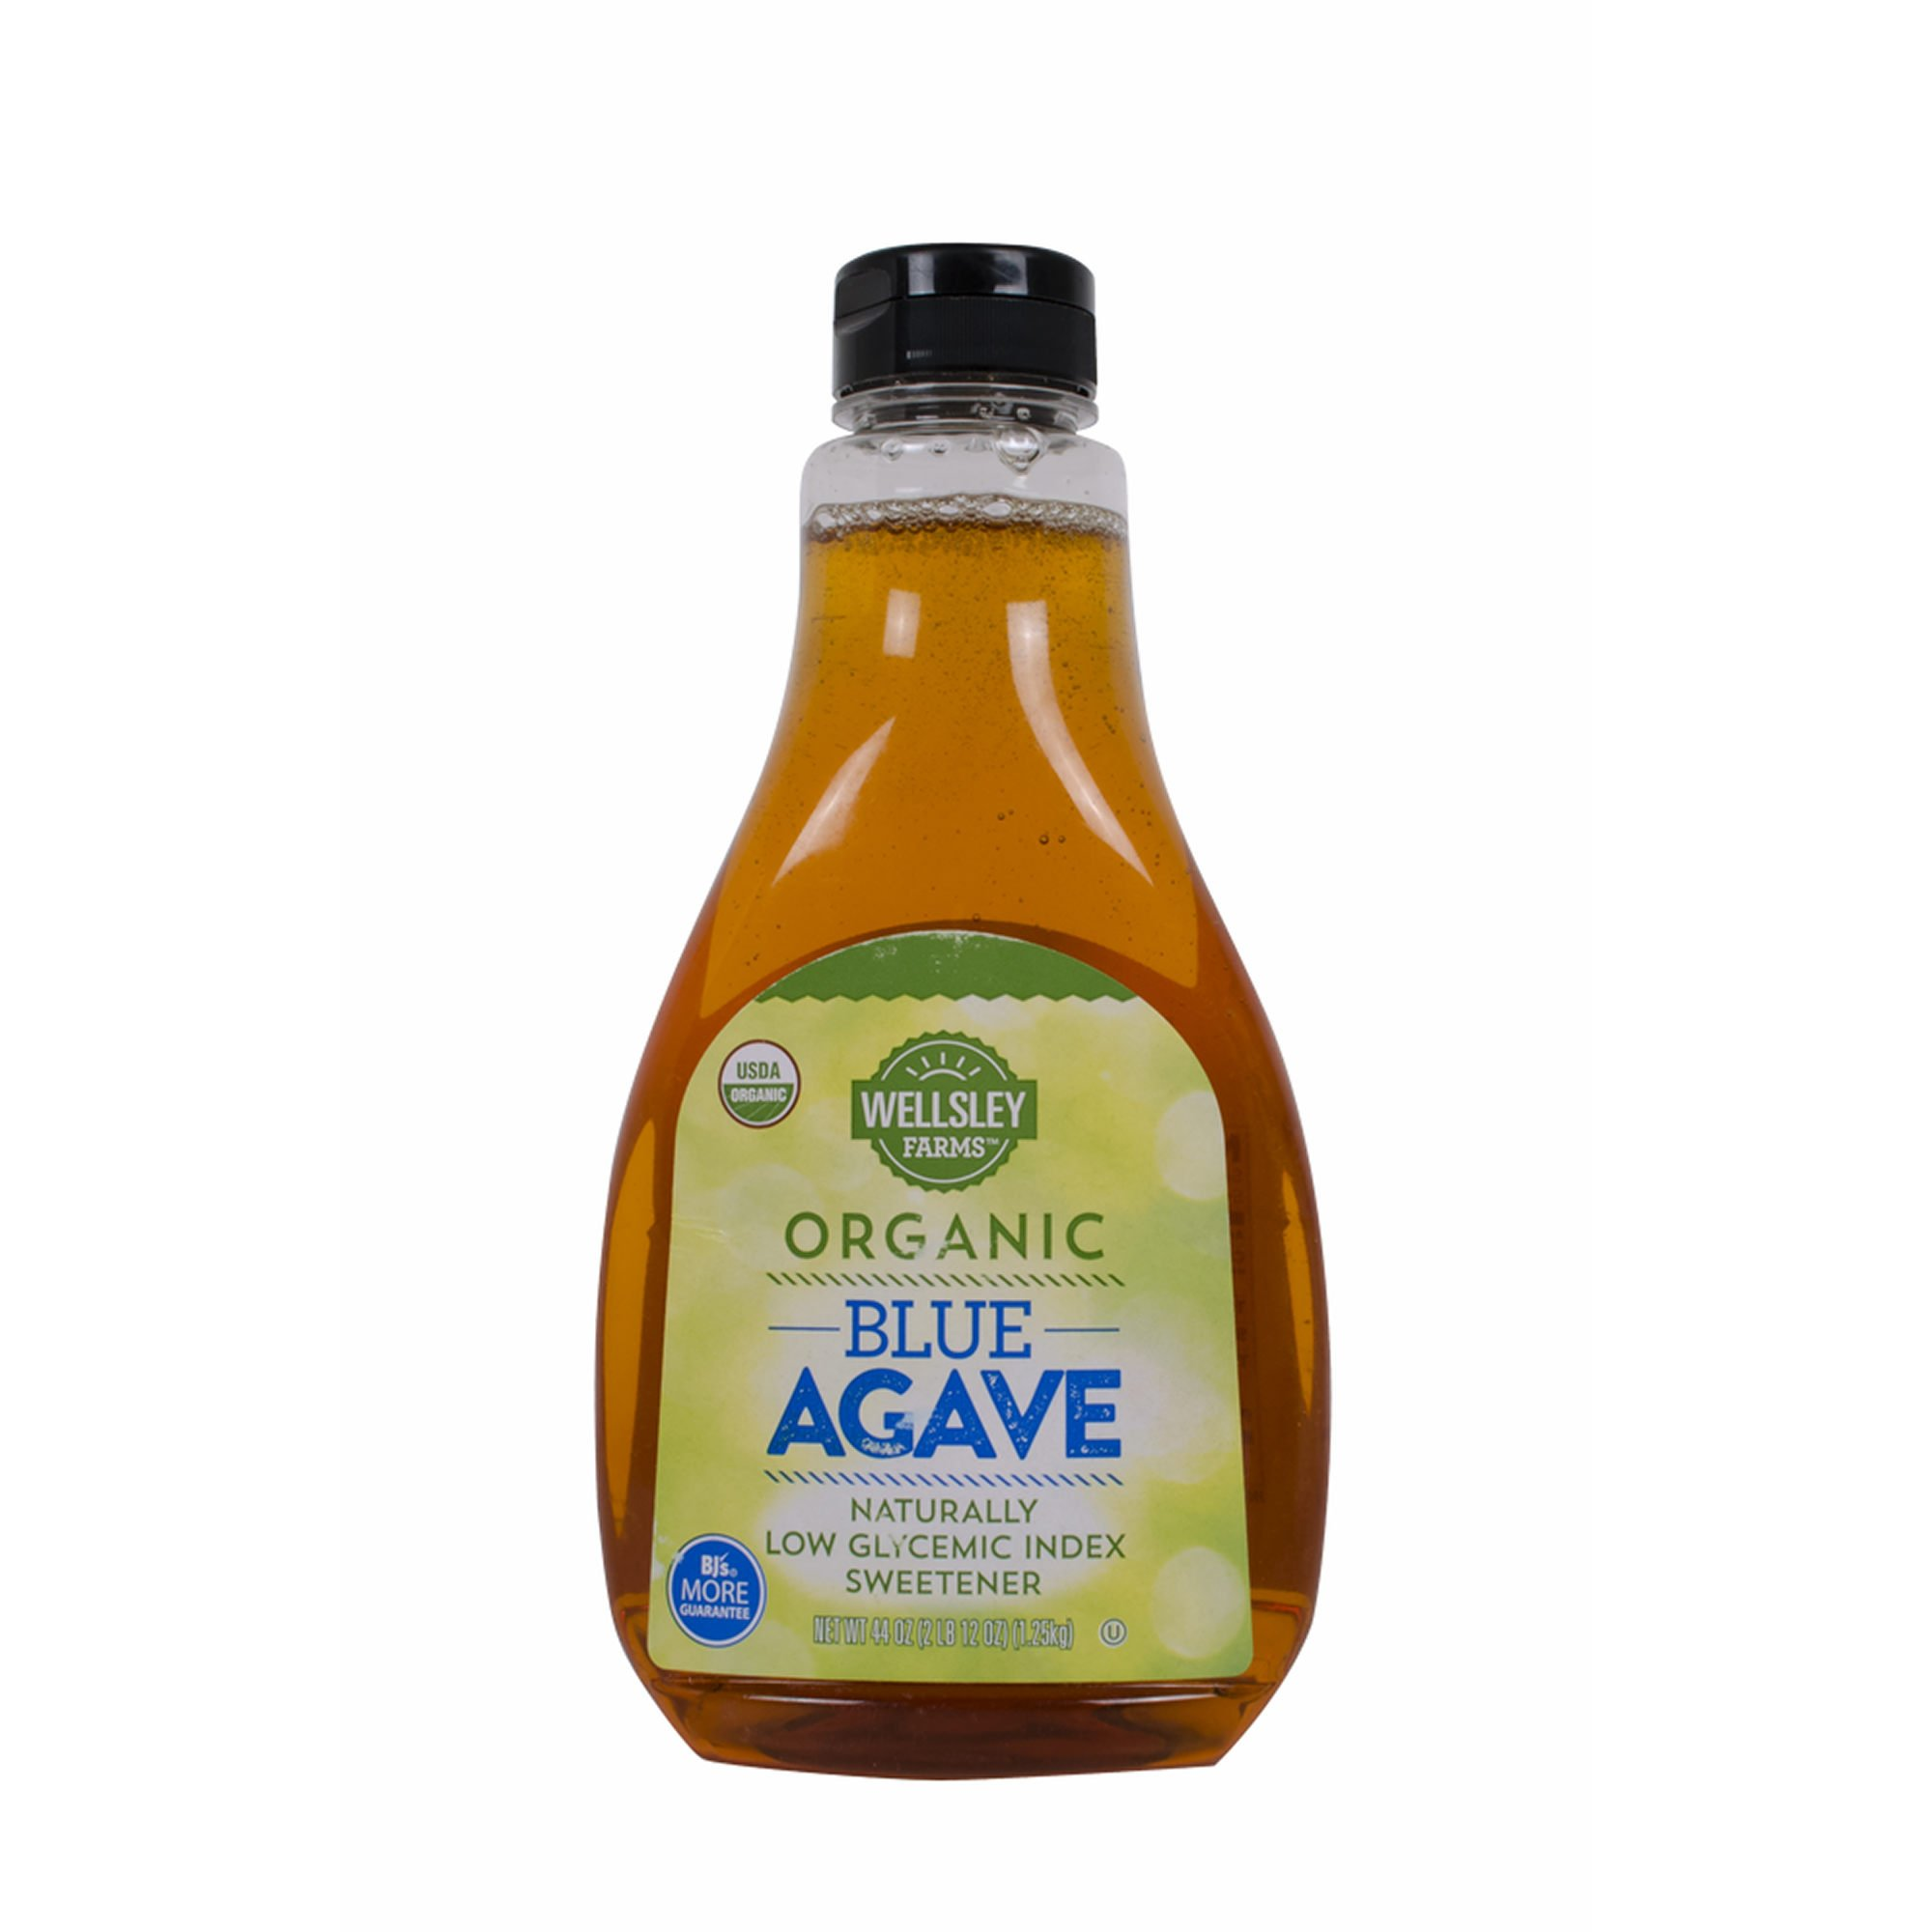 Wellsley Farms Organic Blue Agave, 44 oz. (pack of 6)